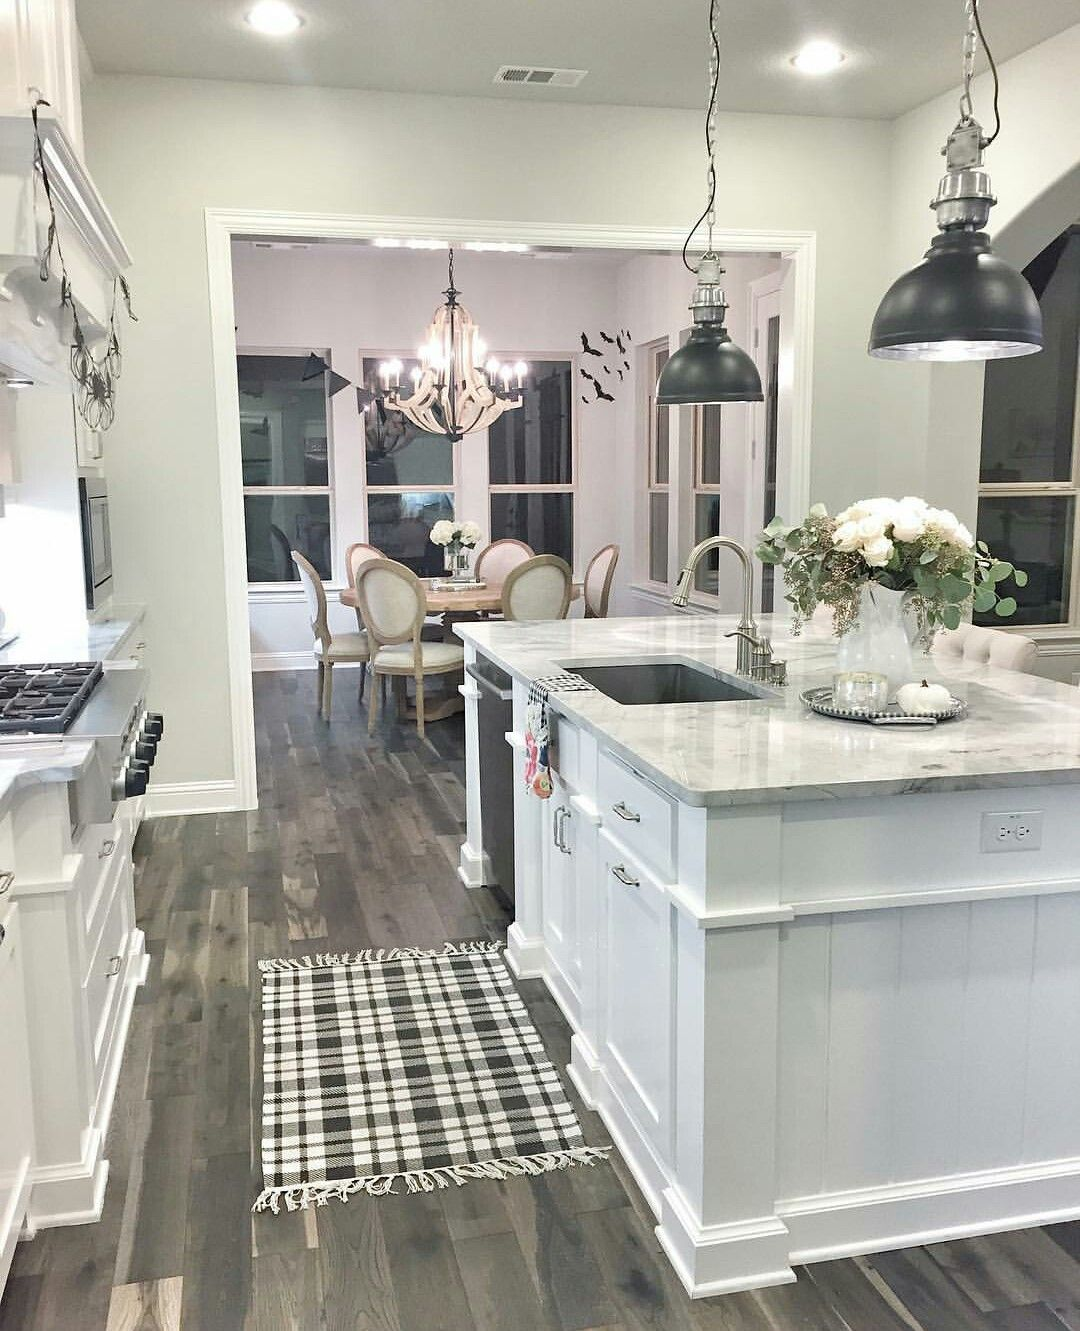 Beach House Renovation Design Decisions For The Kitchen: Pin By Sterling Roses Blog On Dining Rooms/Kitchens